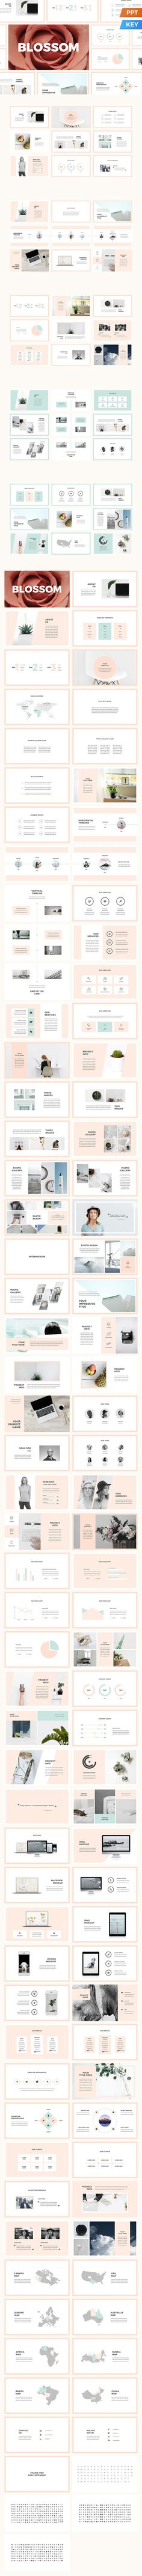 54 best Plantillas power point images on Pinterest | Powerpoint ...